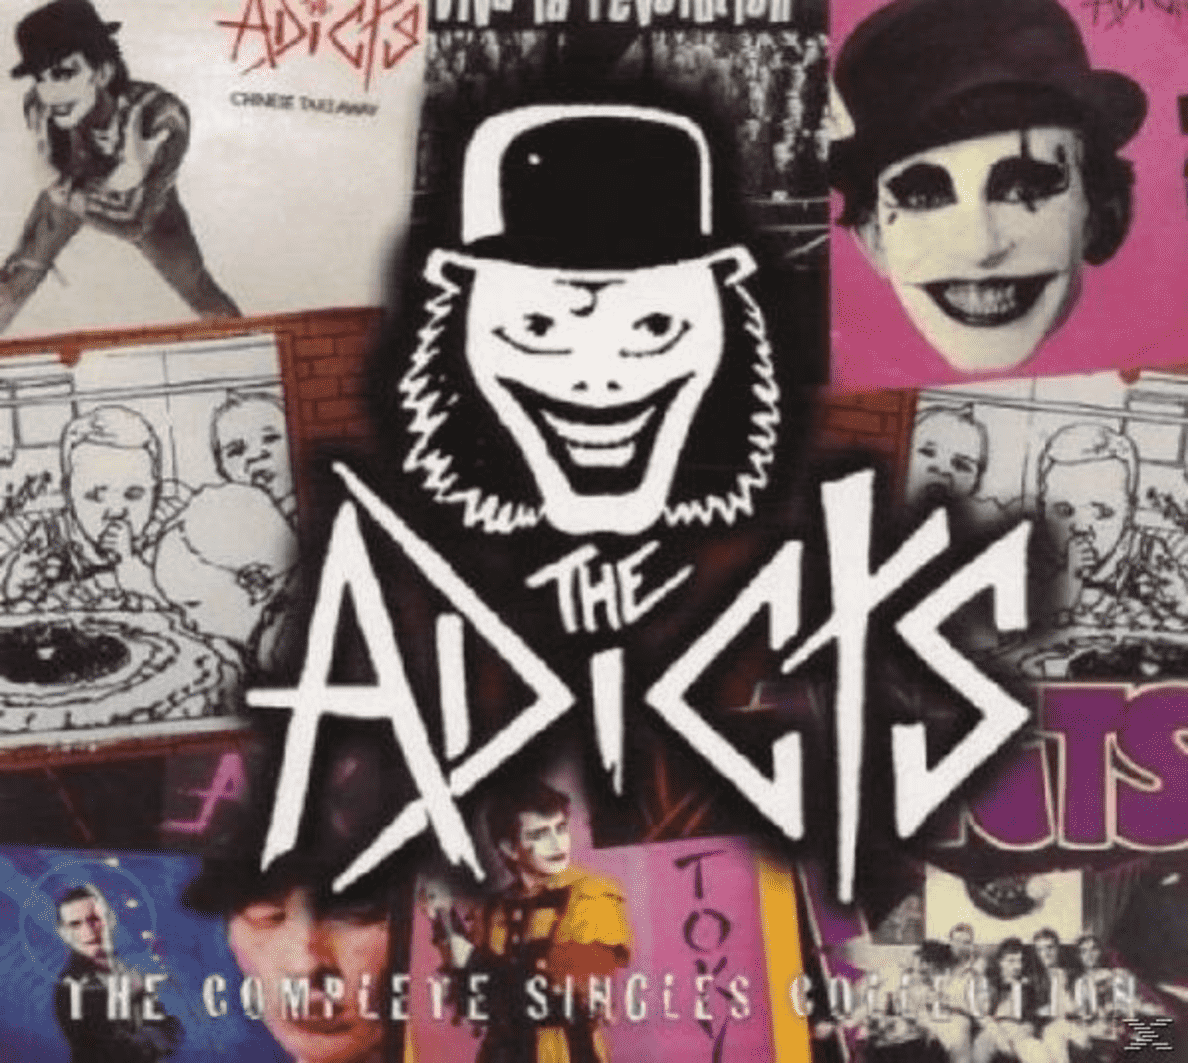 COMPLETE SINGLES/LIM.ED.DIGIP. The Adicts auf CD